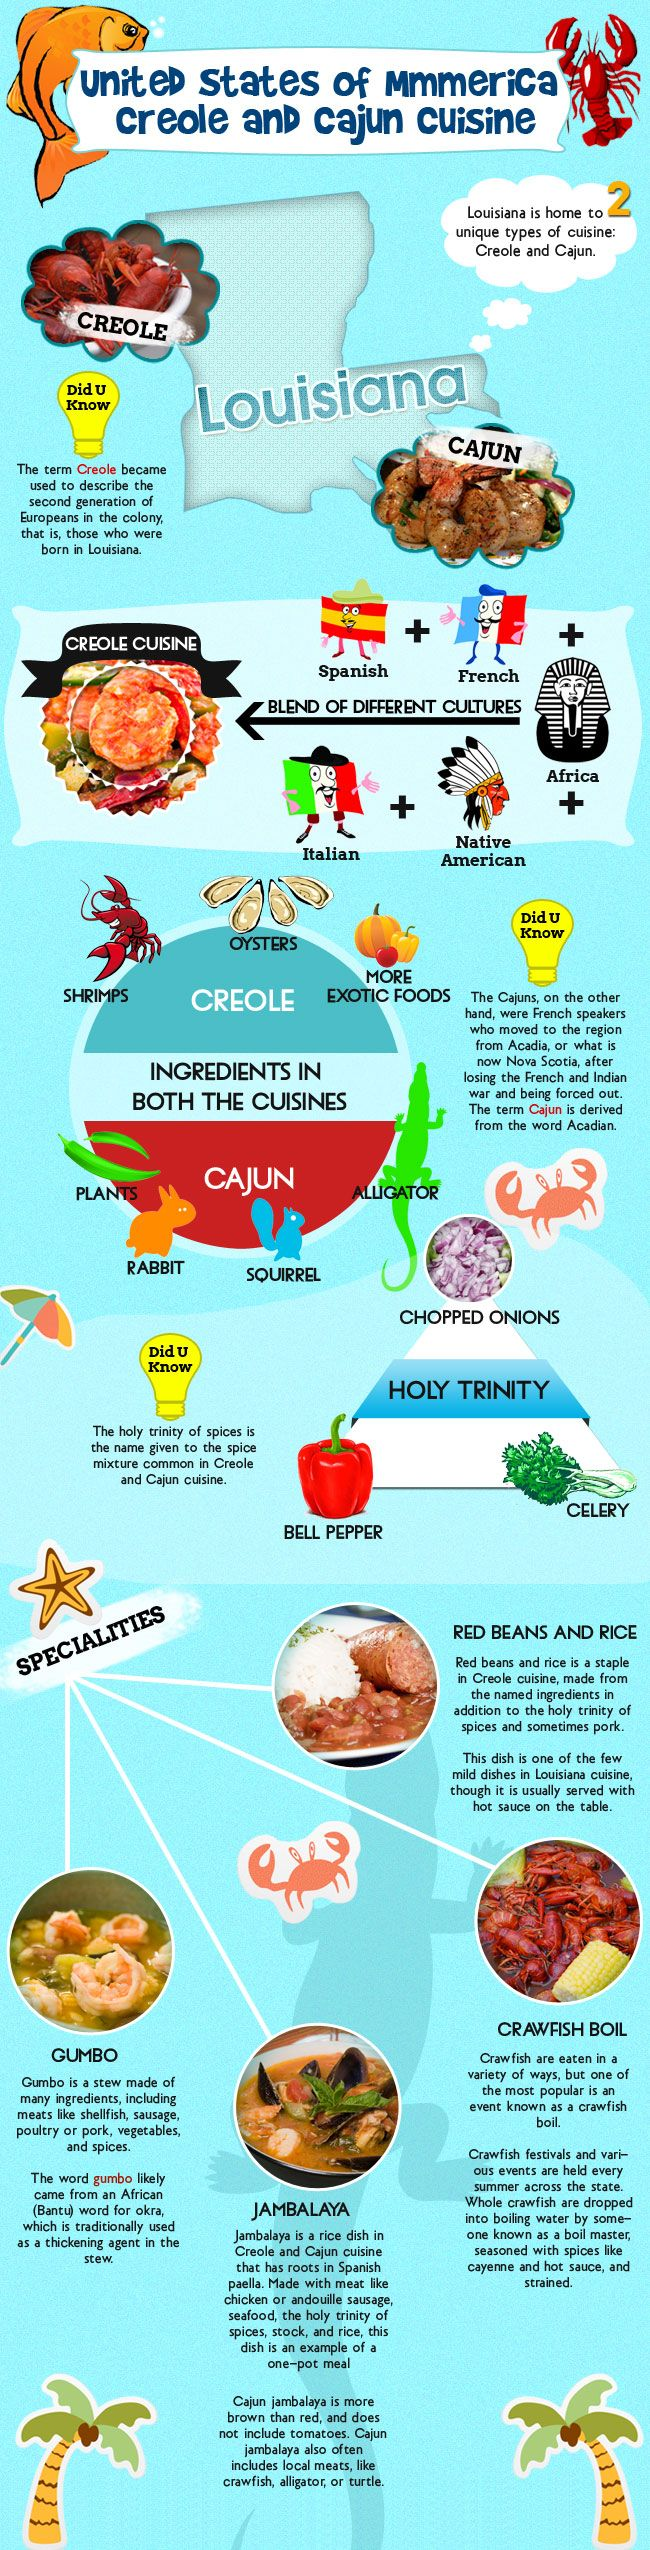 Louisiana Food #Infographic  - Major food includes Creole And Cajun, creole is a blend of different cuisines... #infografía